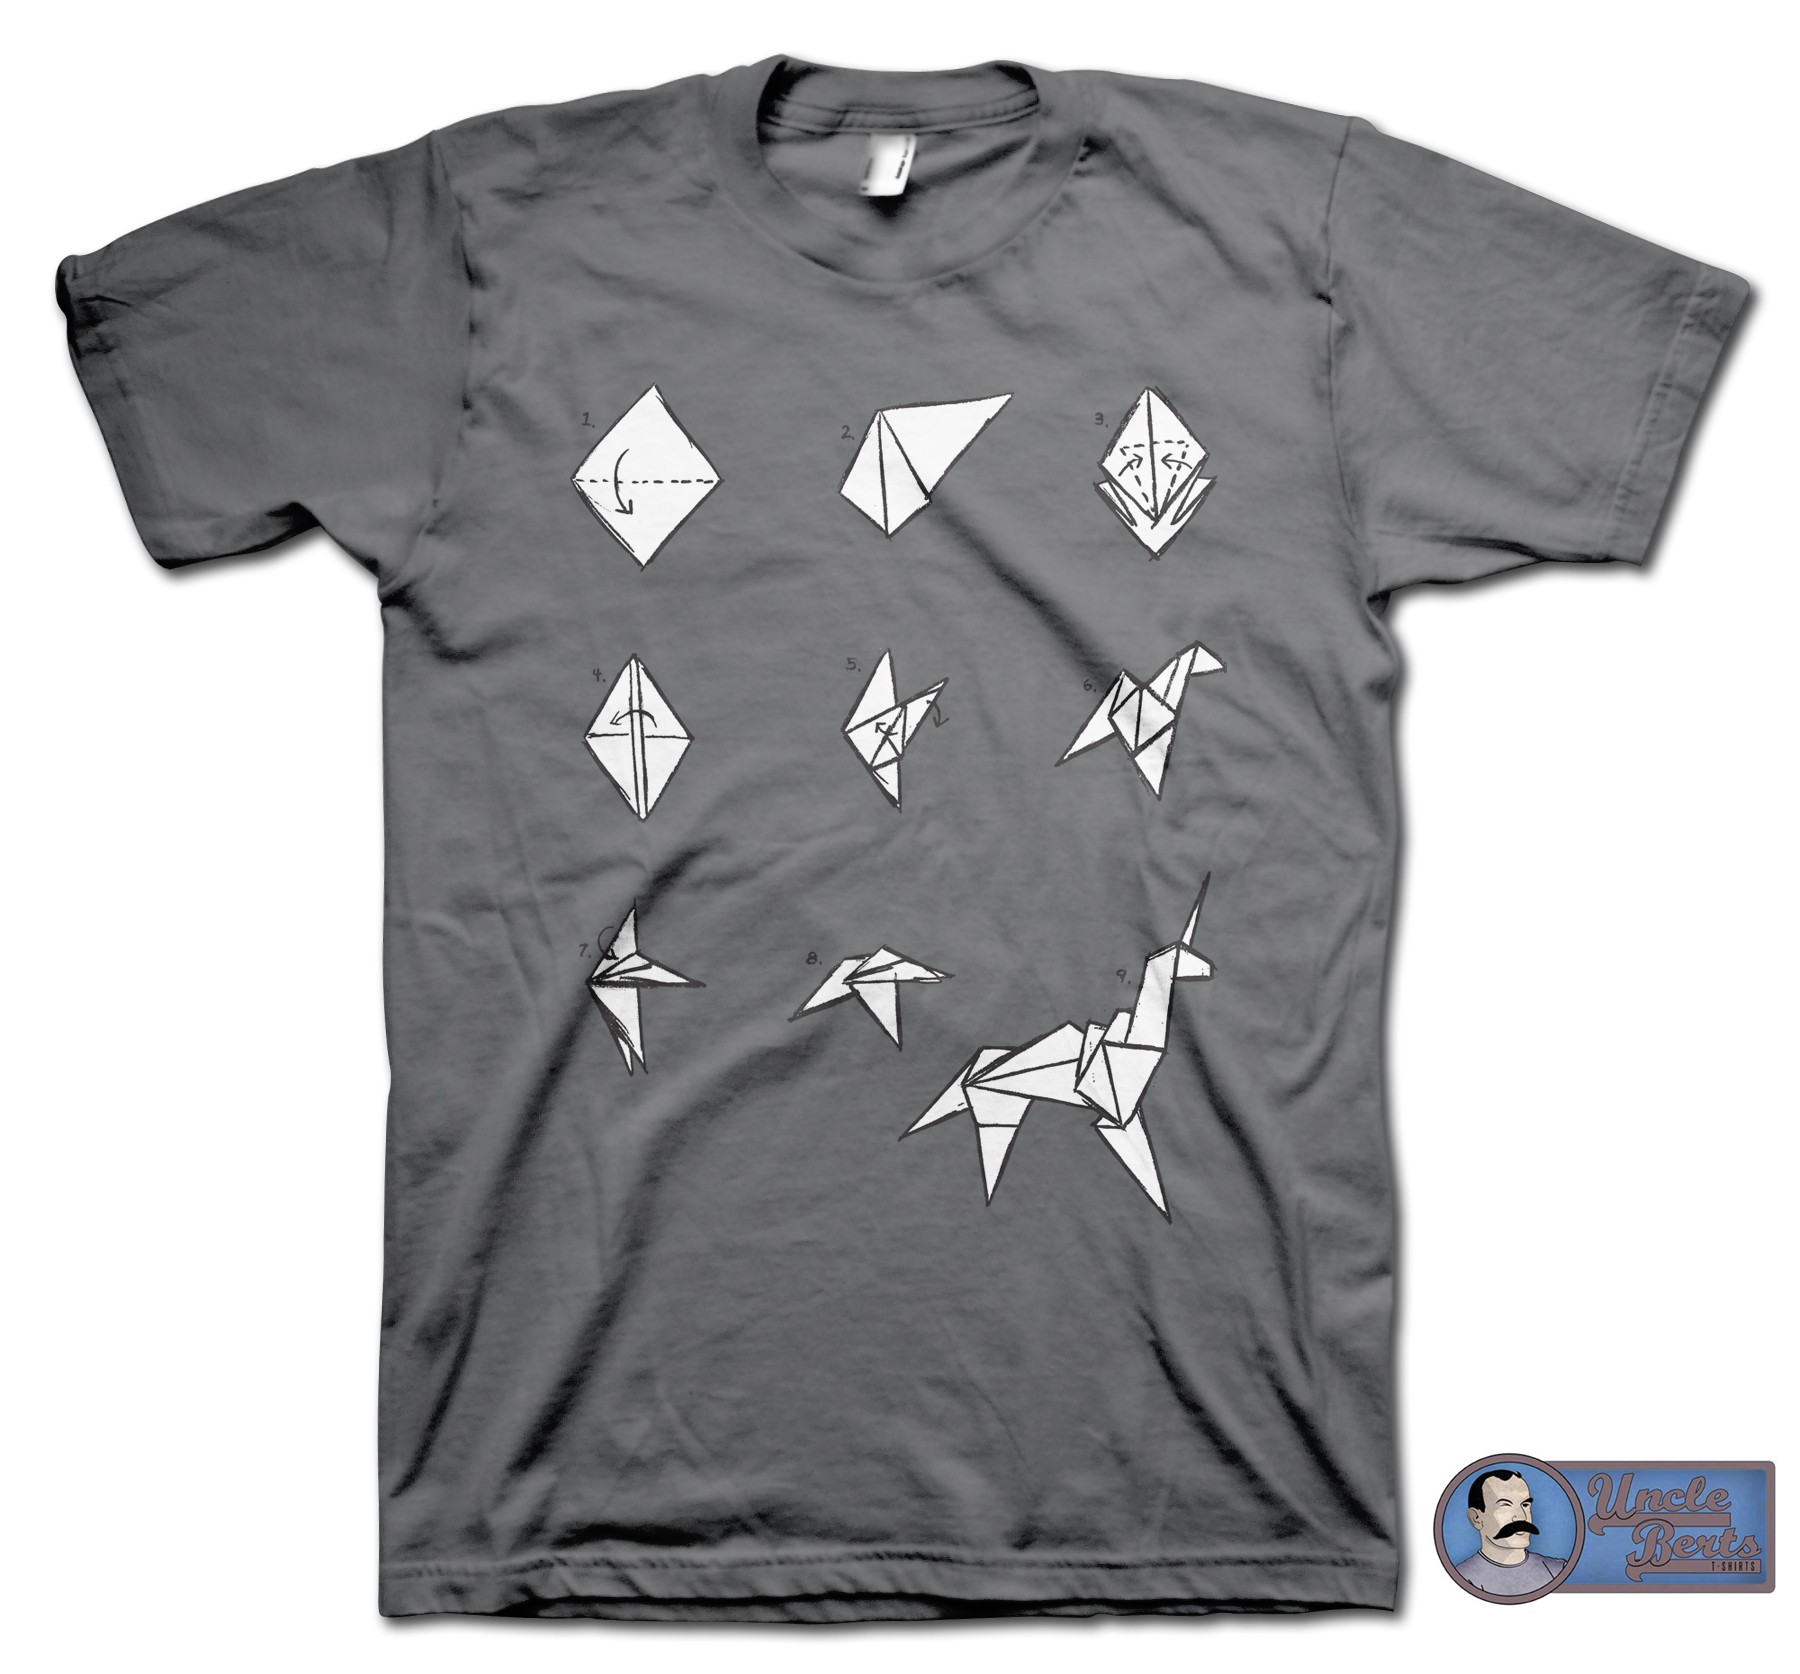 Blade Runner (1982) Inspired Origami Unicorn T-Shirt